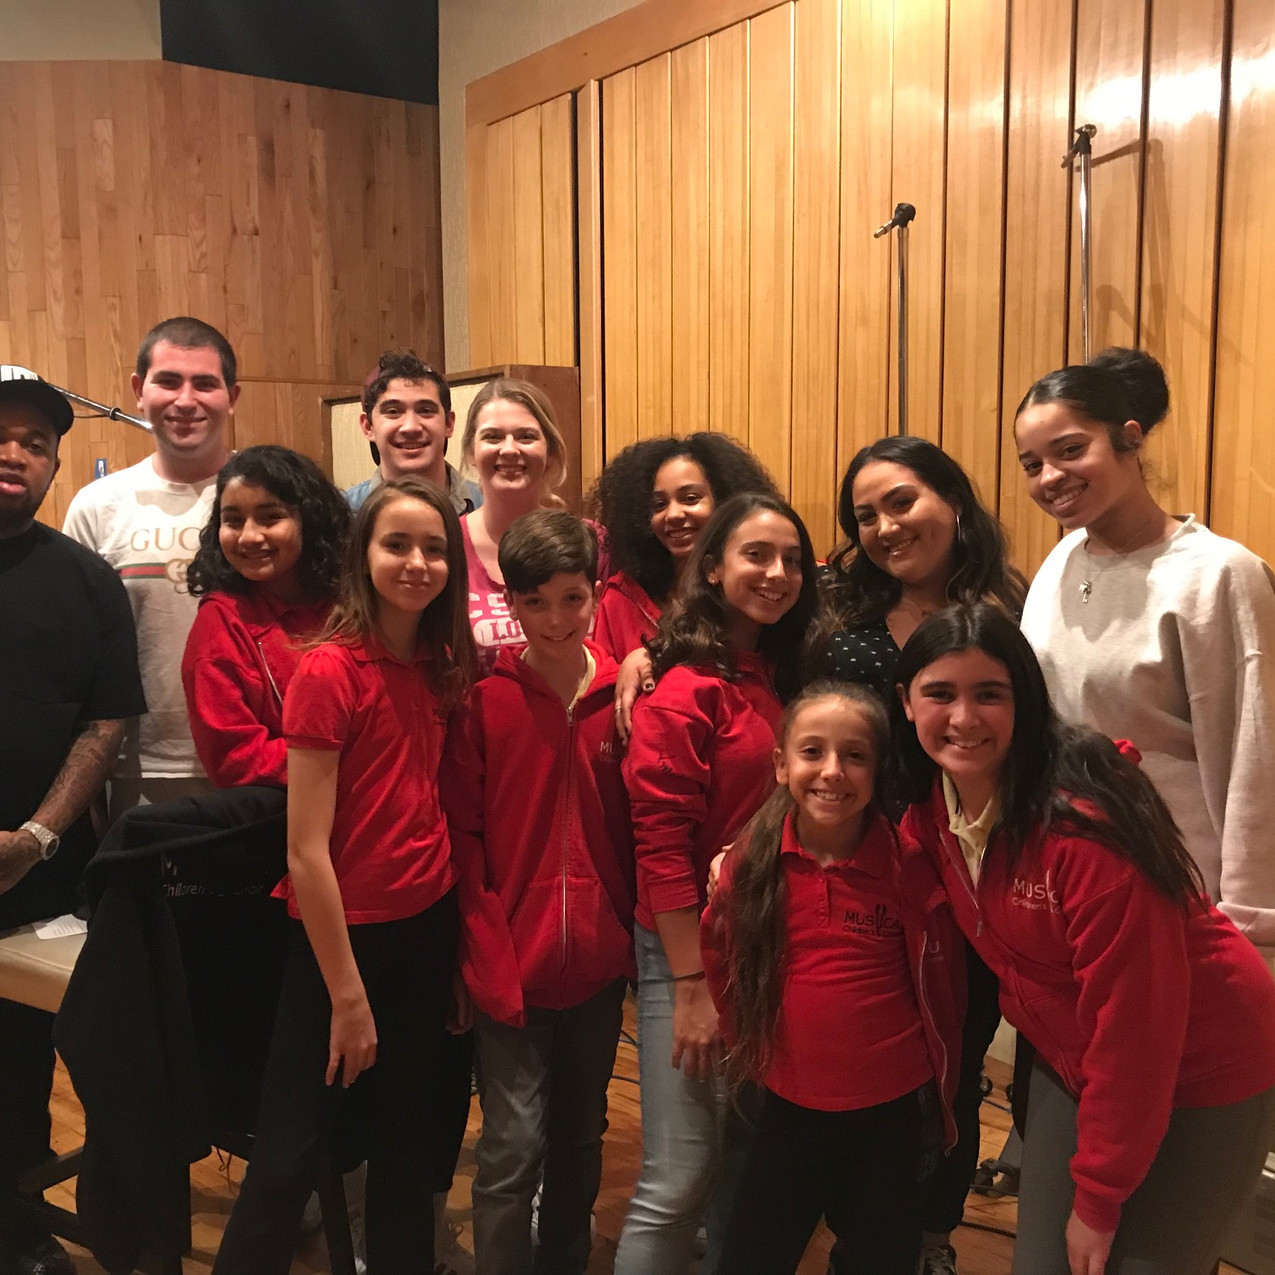 MUSYCA singers with DJ Mustard and Ella Mai